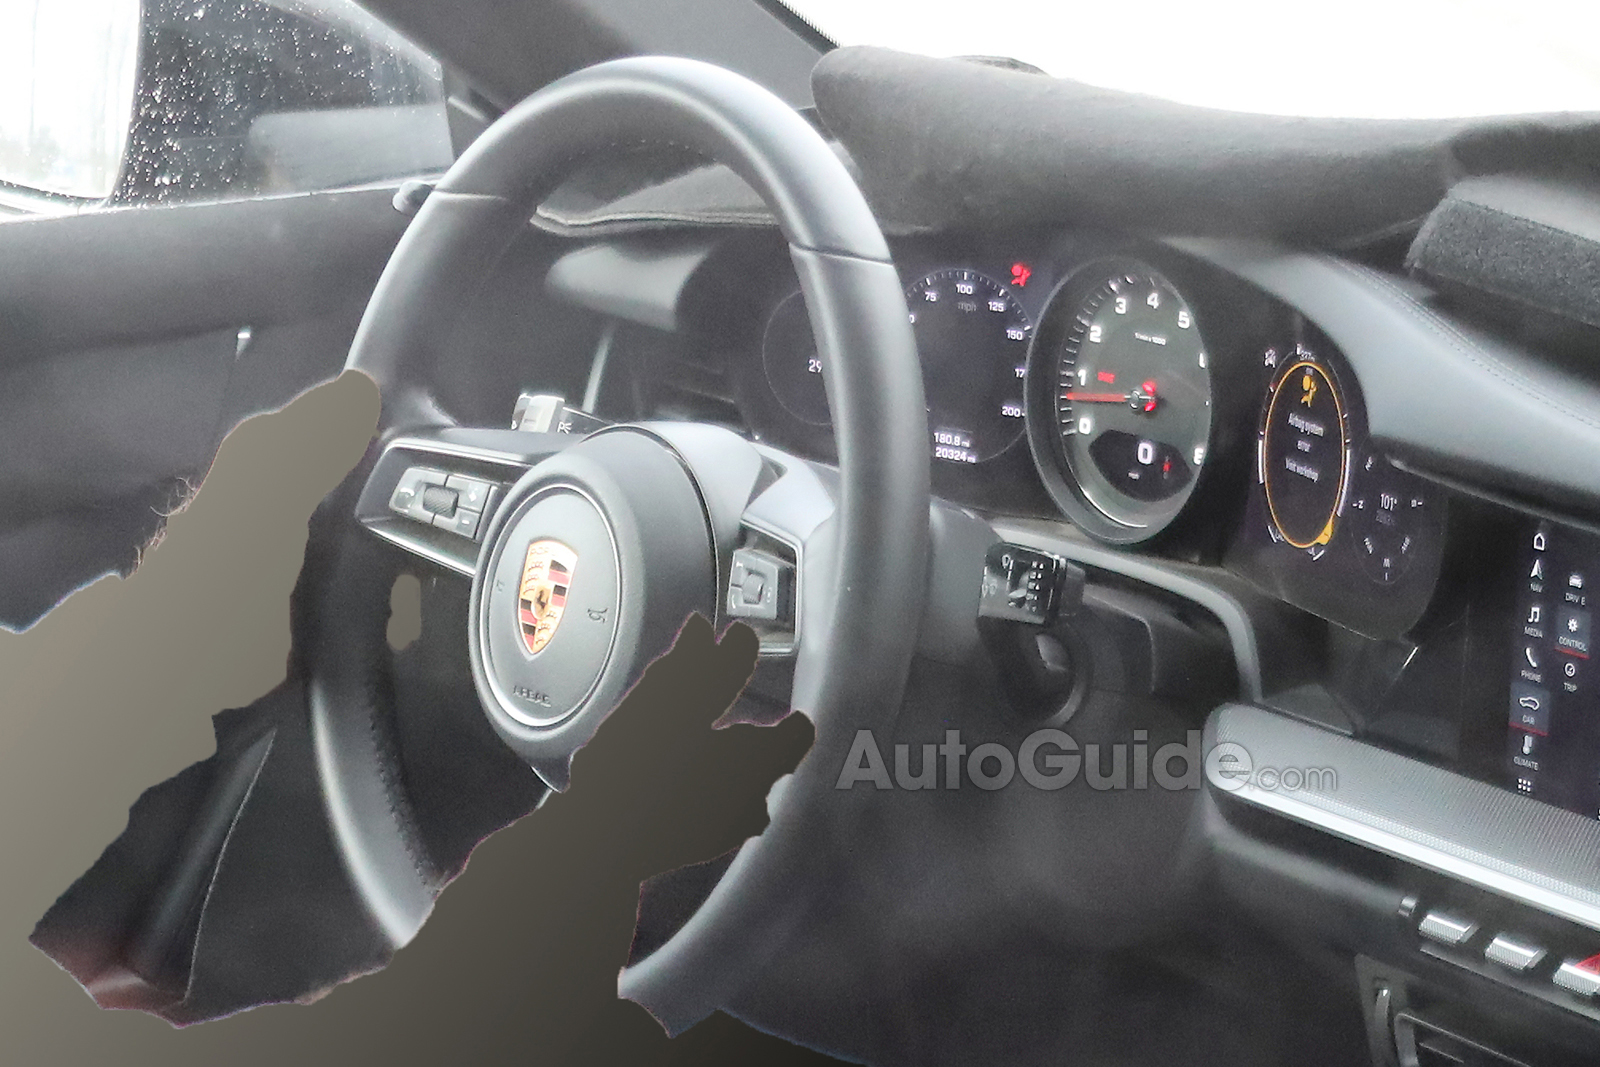 Check Out The Interior Of The New 2019 Porsche 911 Autoguide Com News